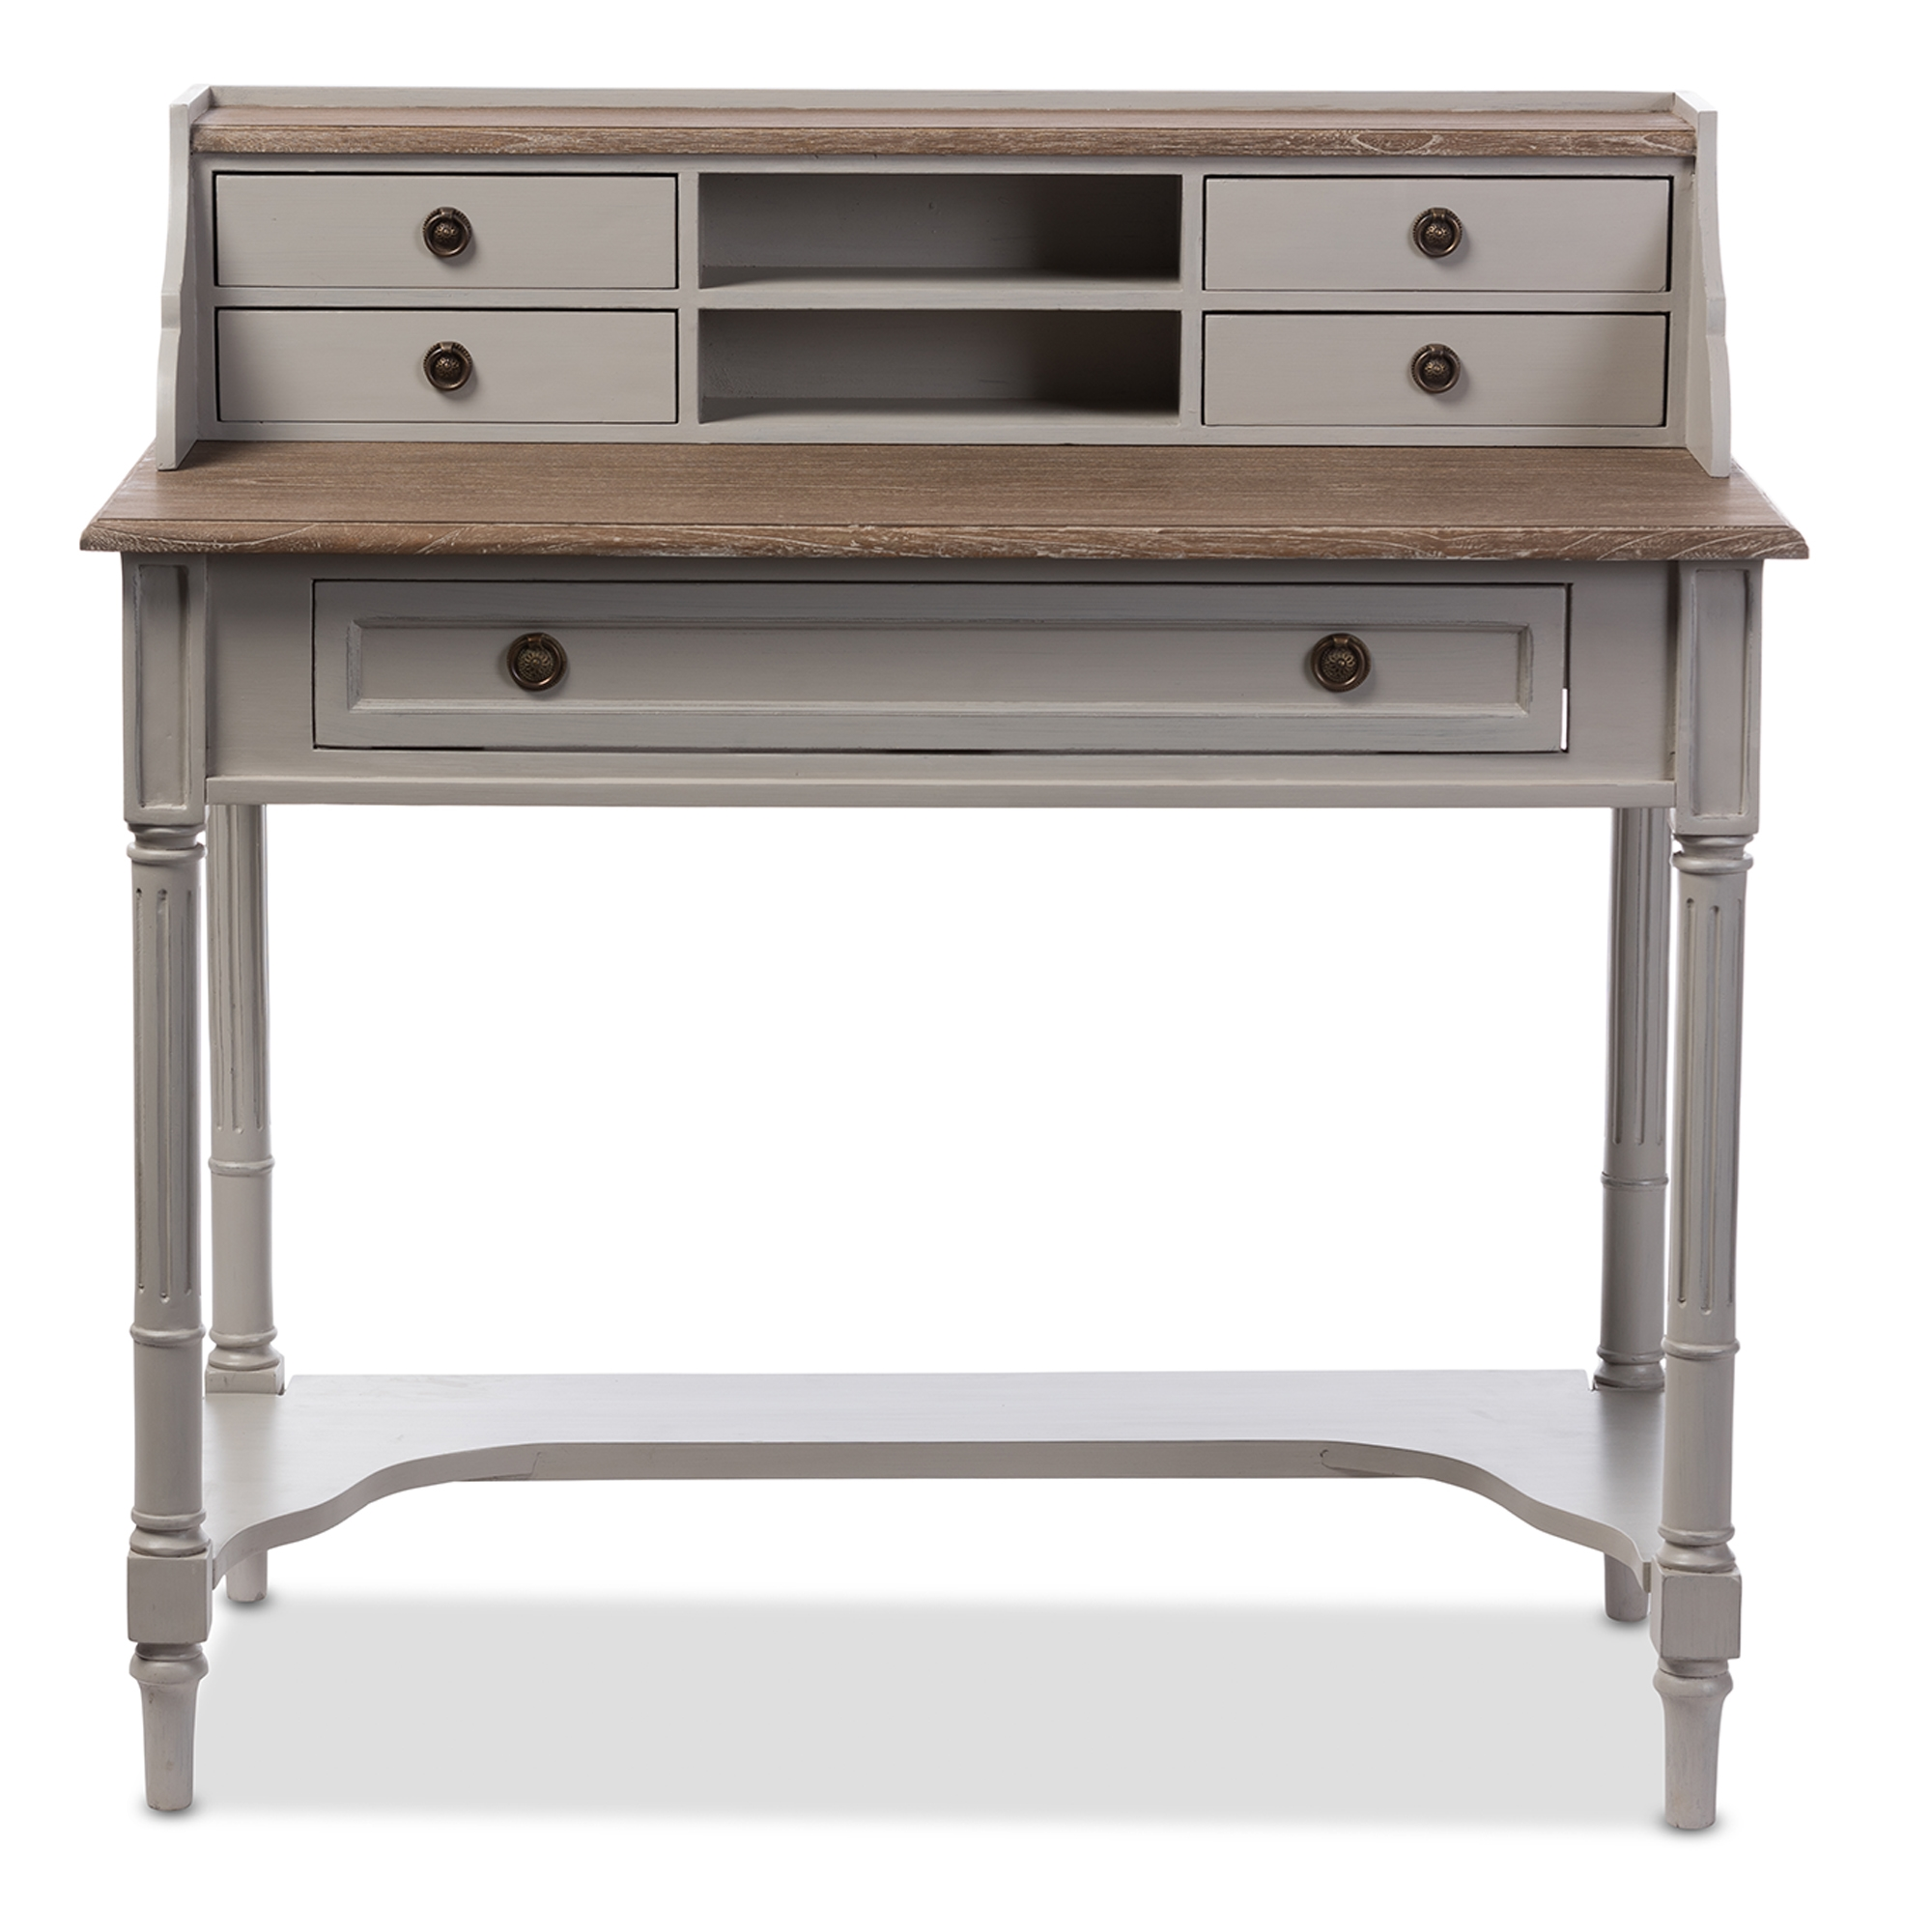 cheap desks for home office. baxton studio edouard french provincial style white wash distressed twotone writing desk affordable modern cheap desks for home office